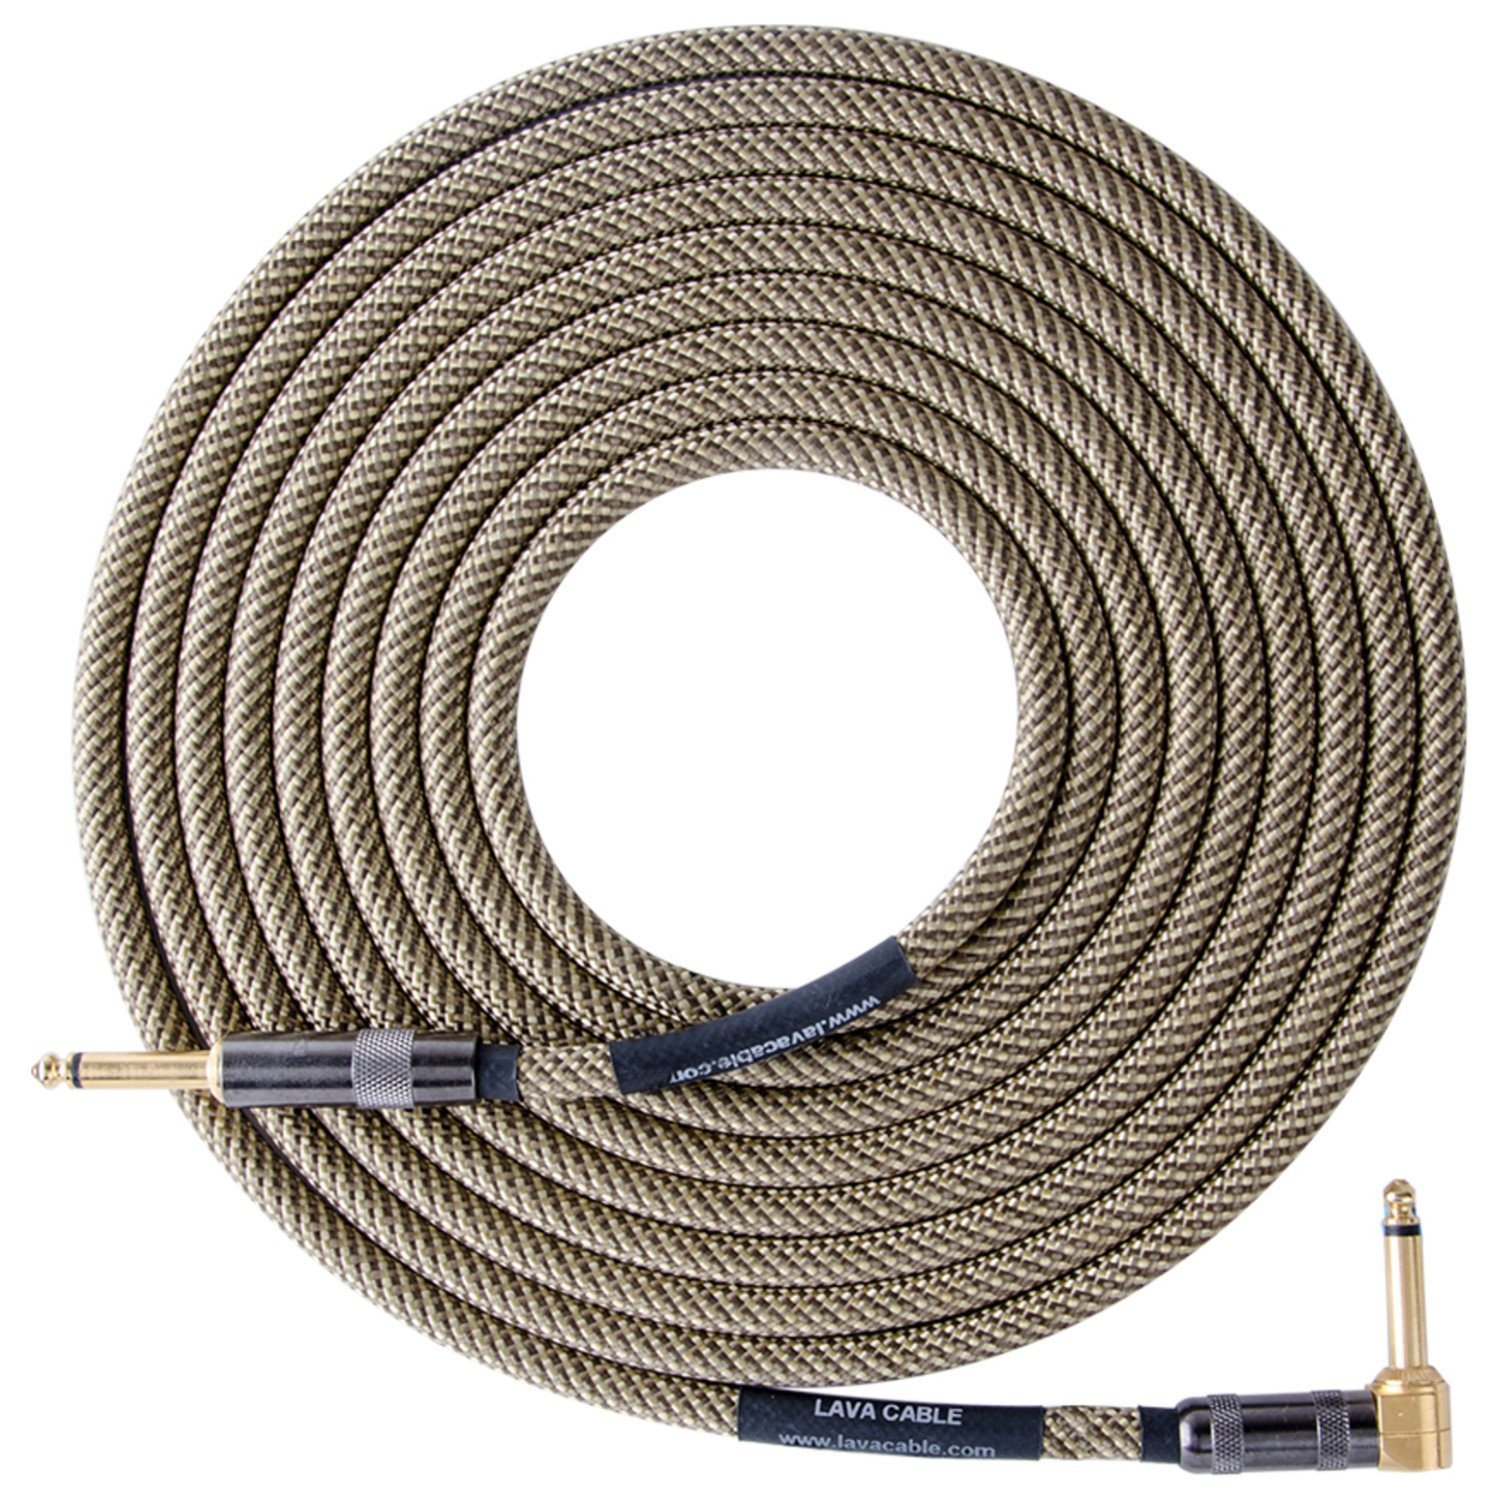 Lava Cable Vintage Tweed 10 ft Straight to Right Angle